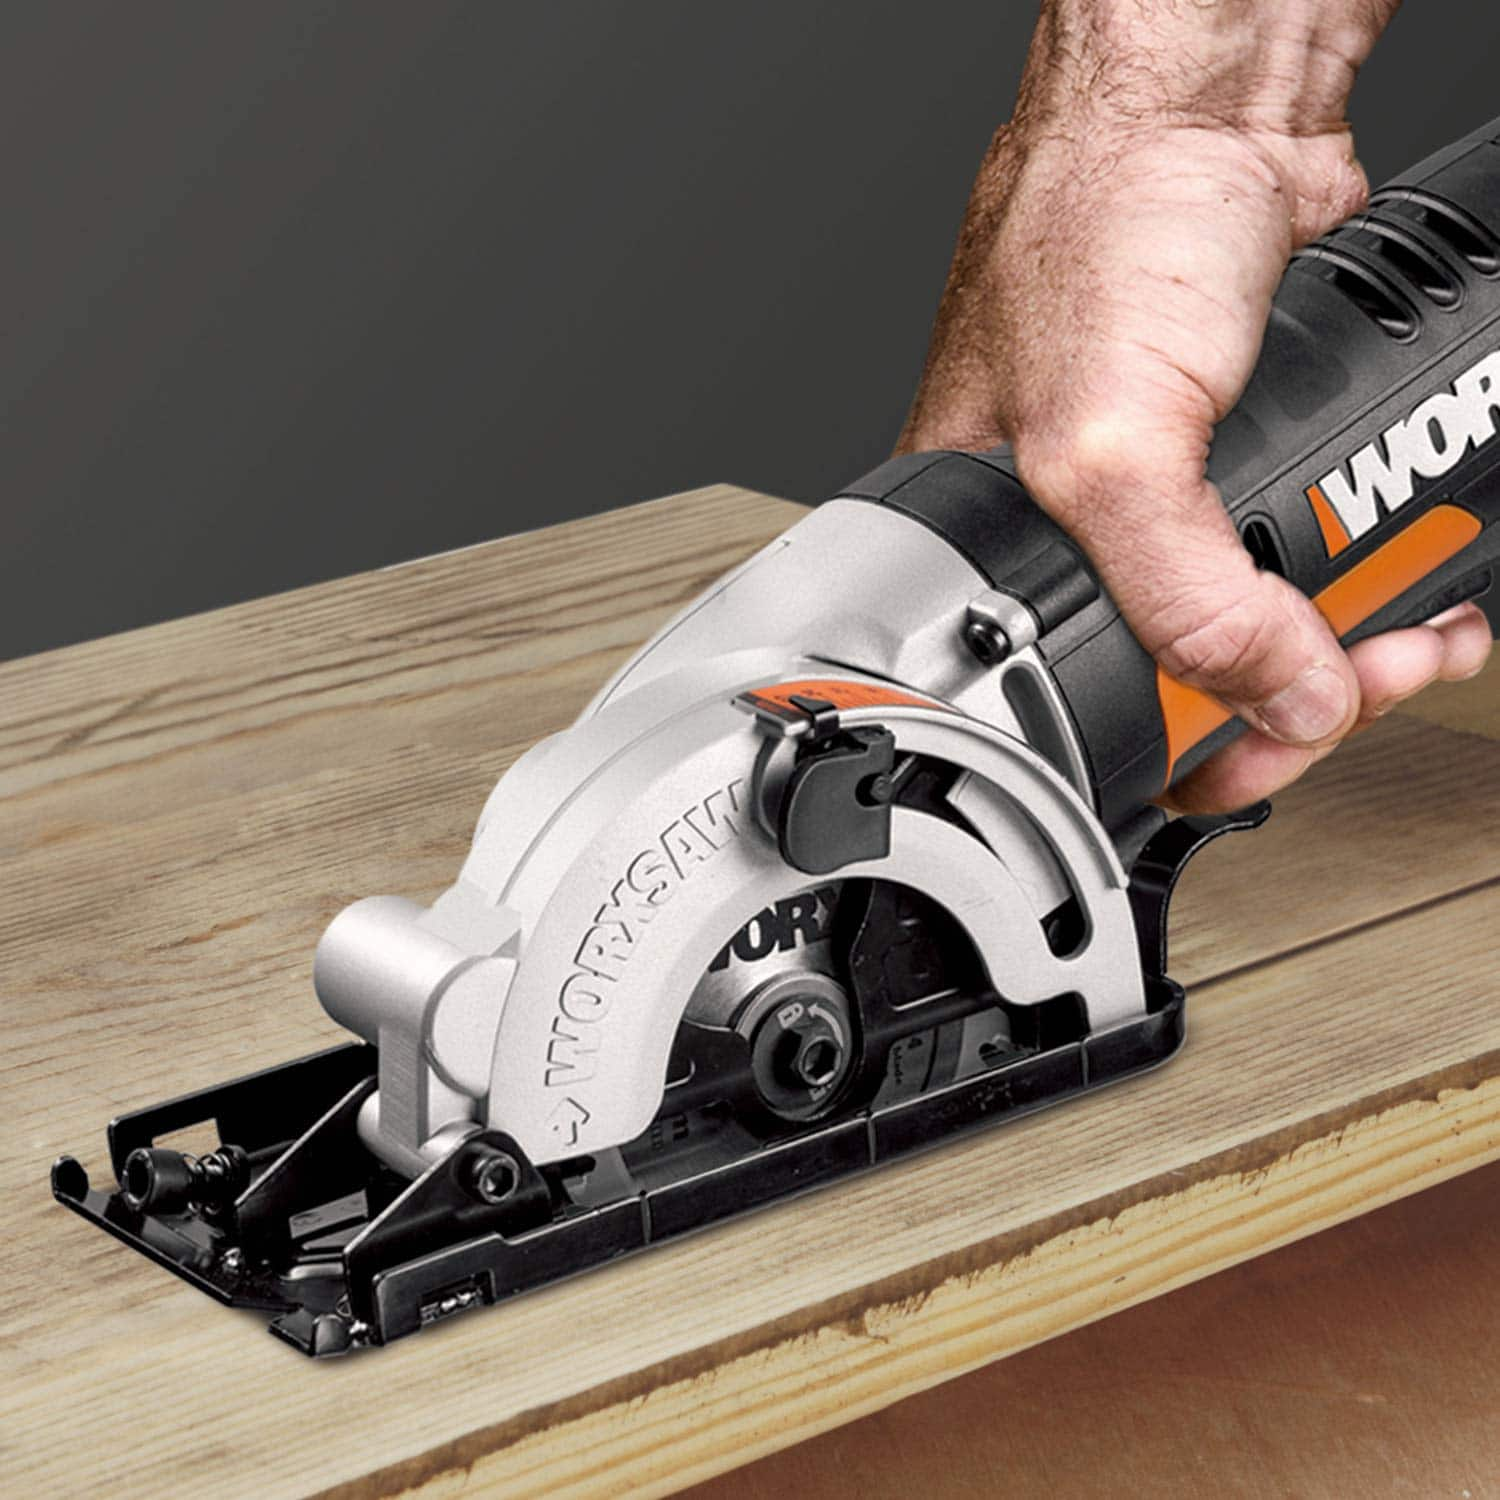 "WORX WX523L 3 3/8"" Cordless Pluge Circular Saw including battery and charger $61.79"